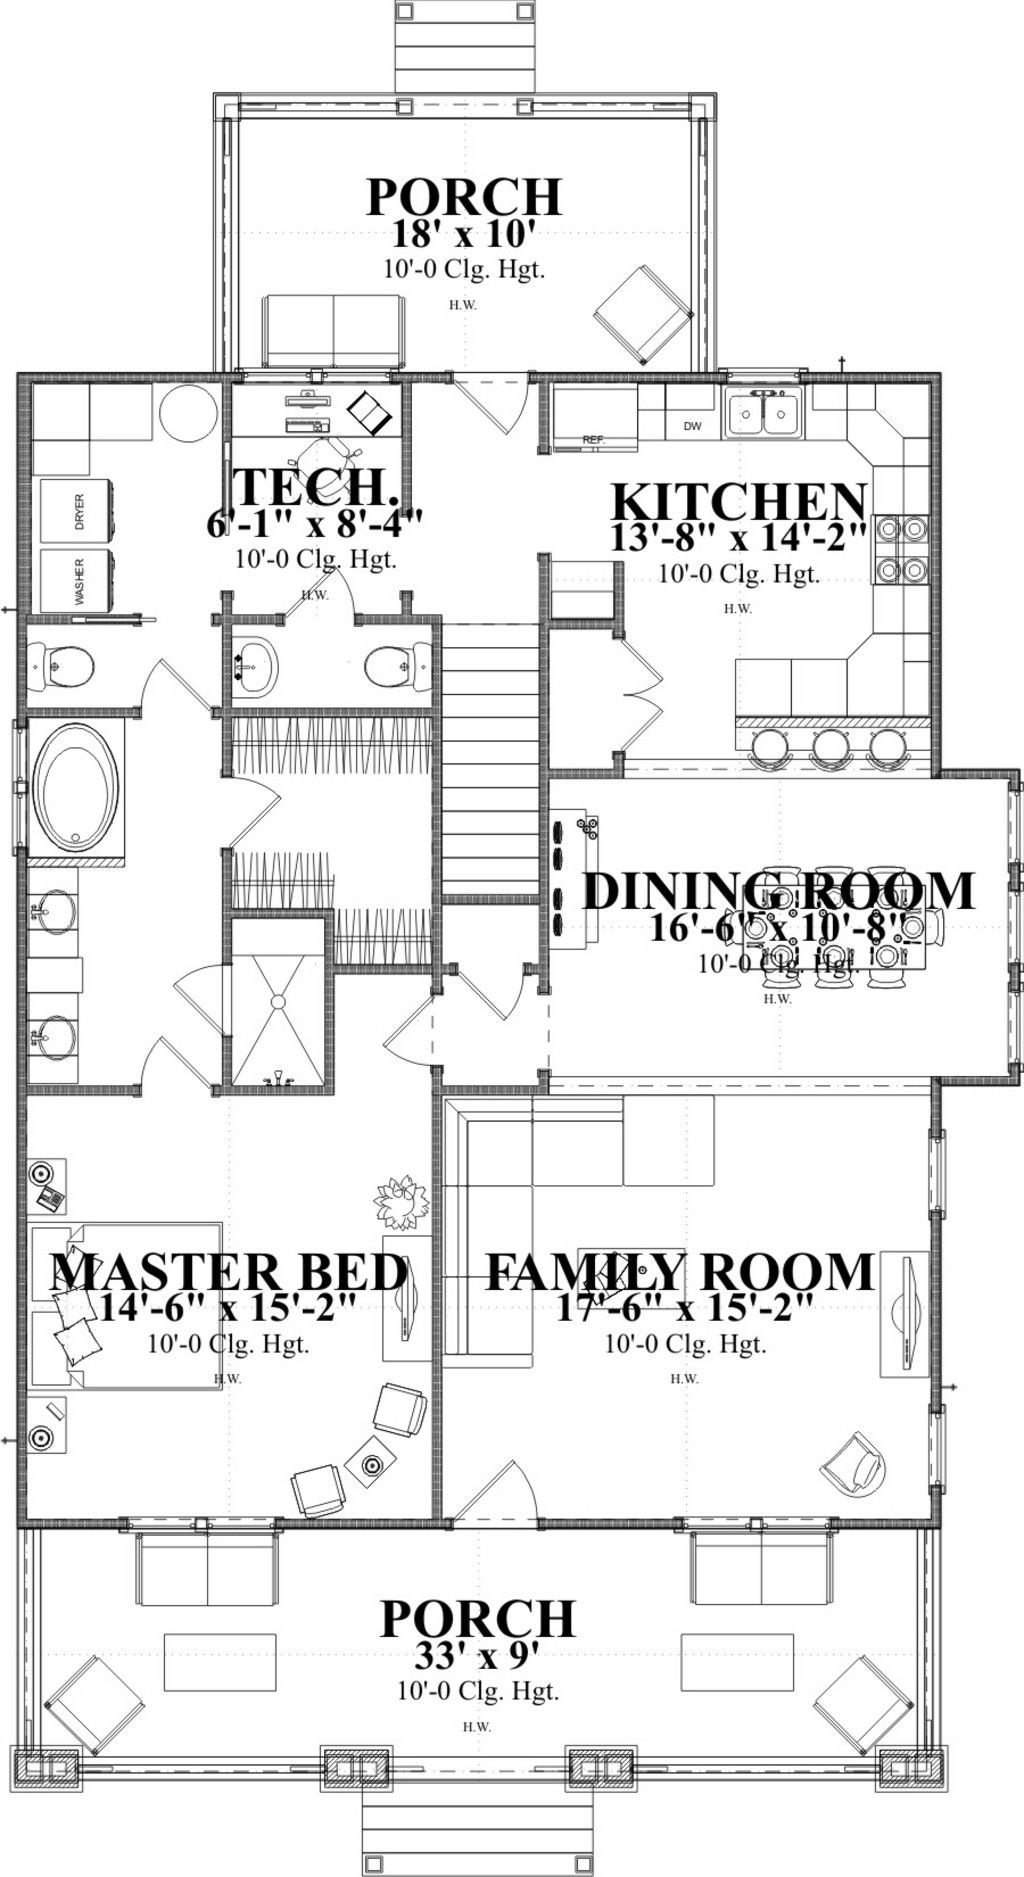 craftsman style house plan 4 beds 3 baths 2253 sq ft plan 63